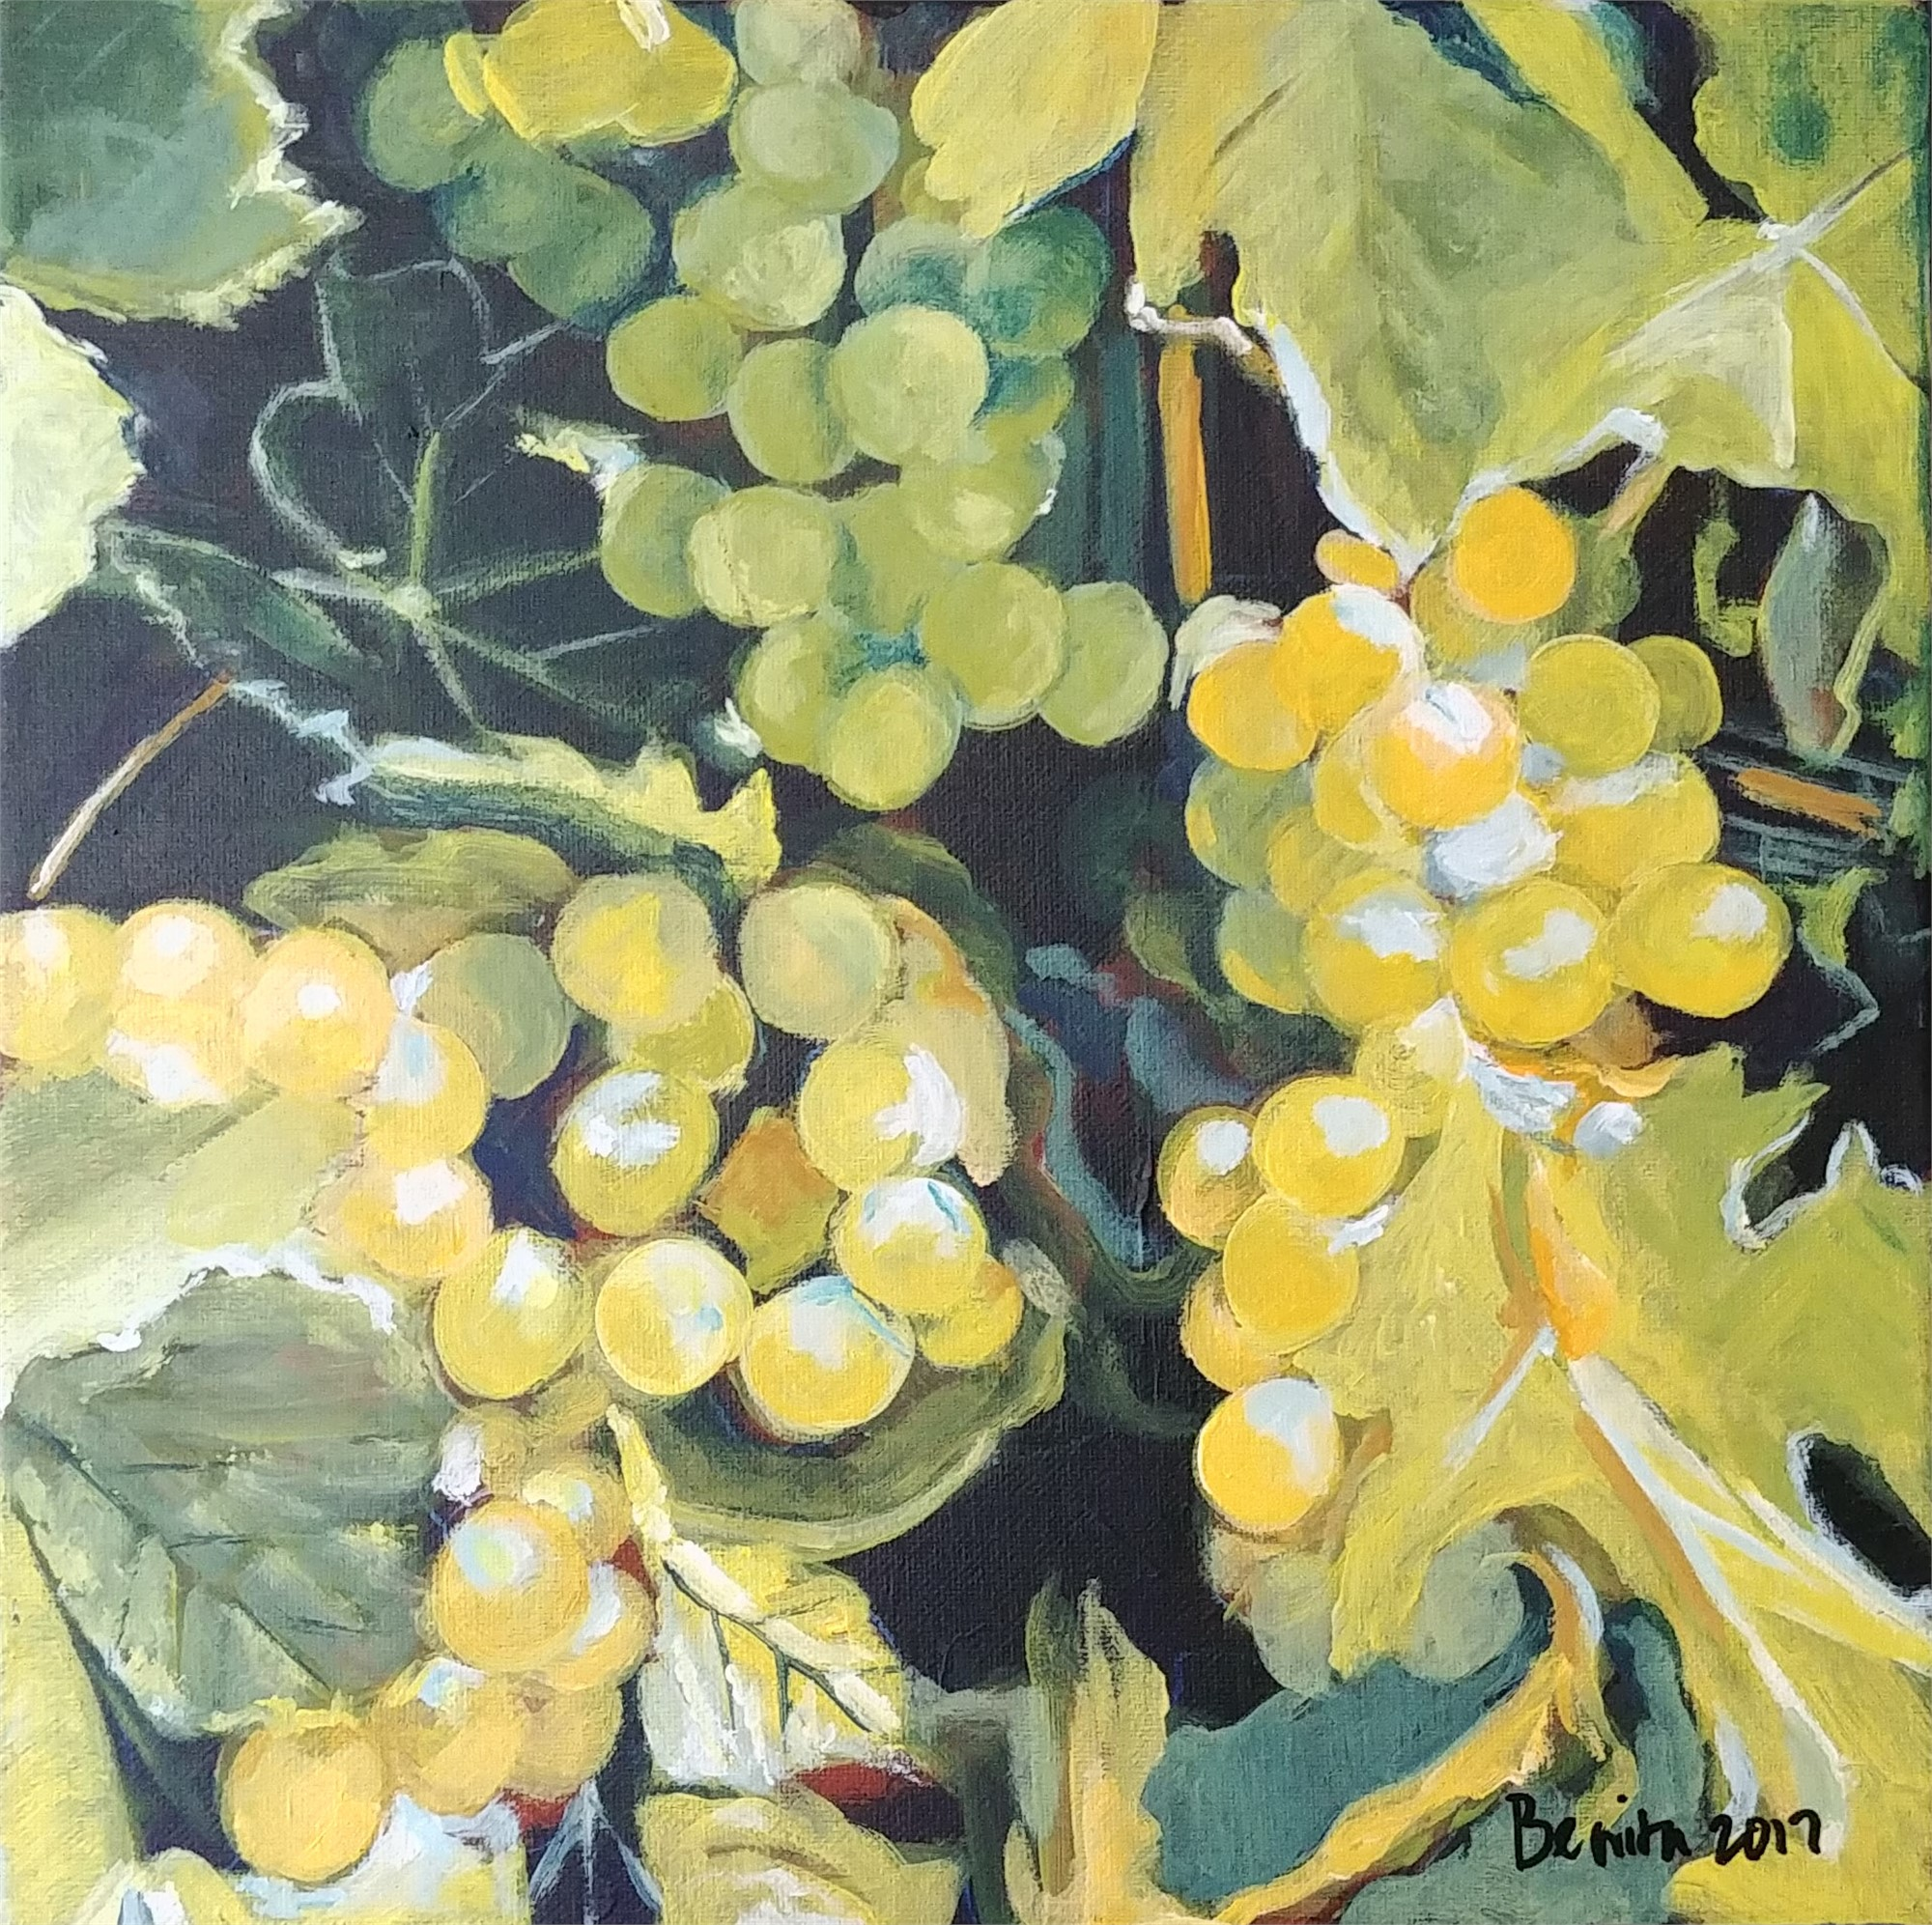 Grapes by Benita Cole (McMinnville, OR)